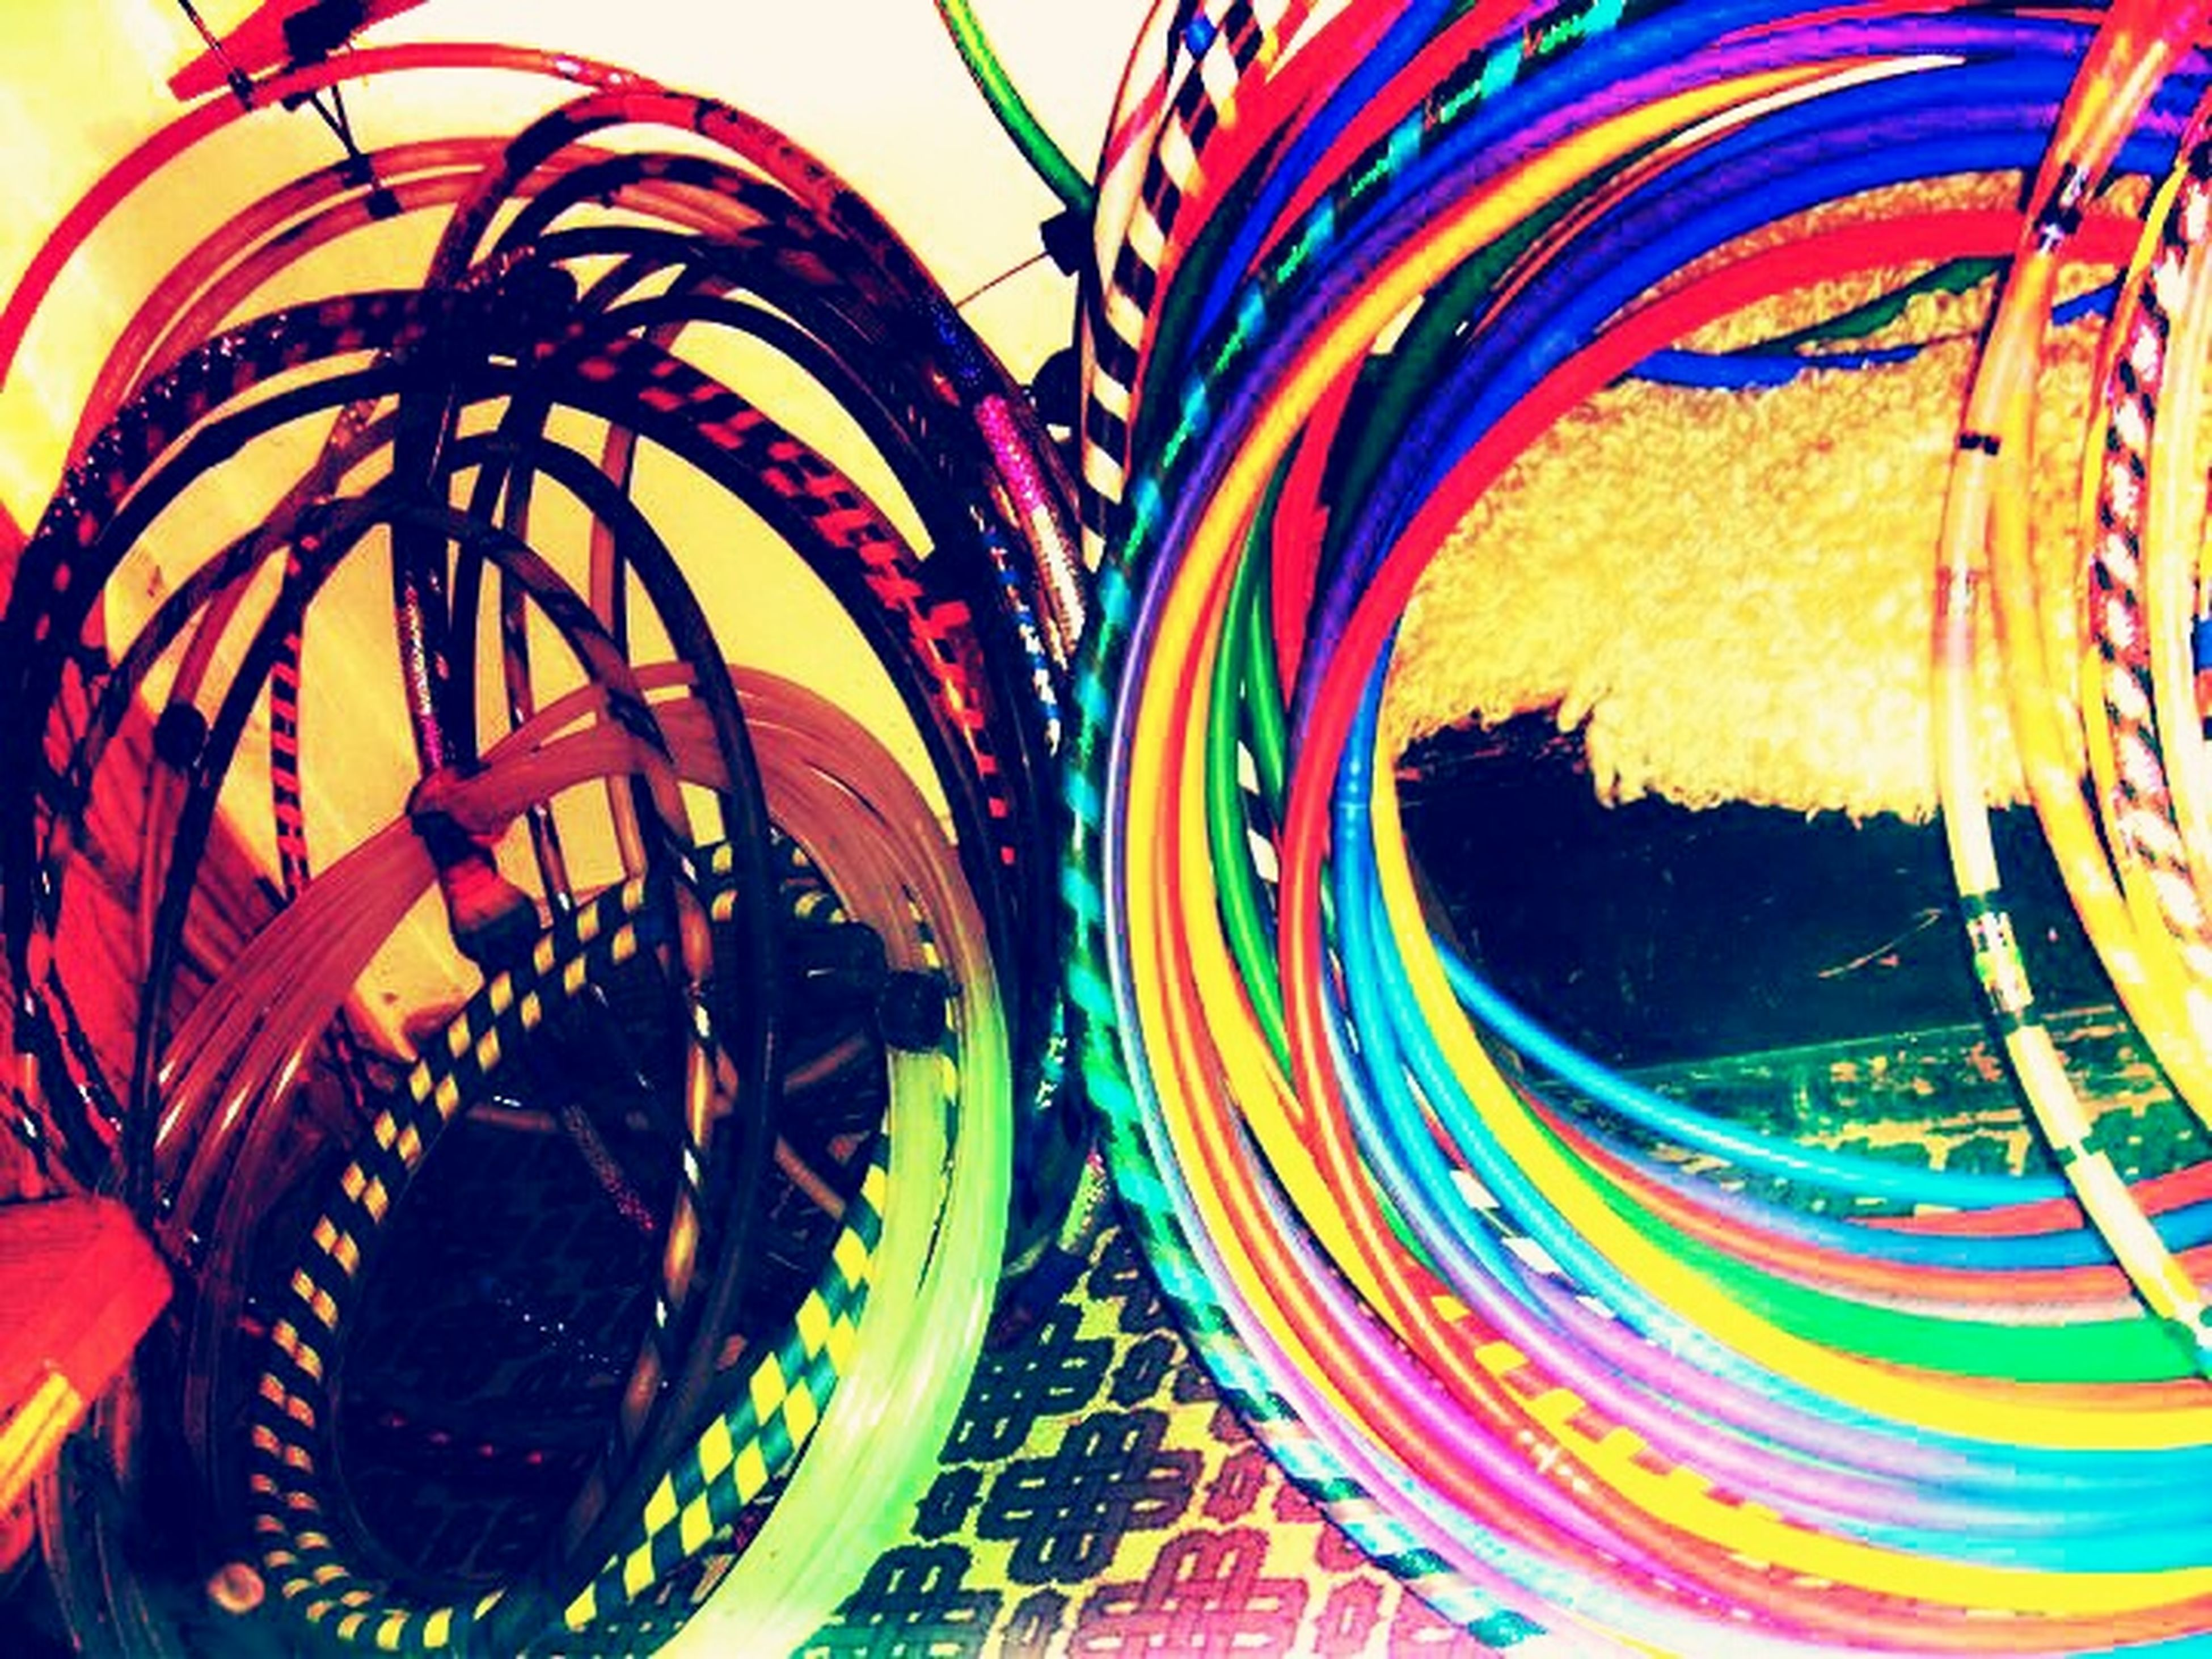 multi colored, circle, close-up, pattern, still life, high angle view, arts culture and entertainment, colorful, amusement park, no people, indoors, geometric shape, ferris wheel, design, art and craft, creativity, art, reflection, day